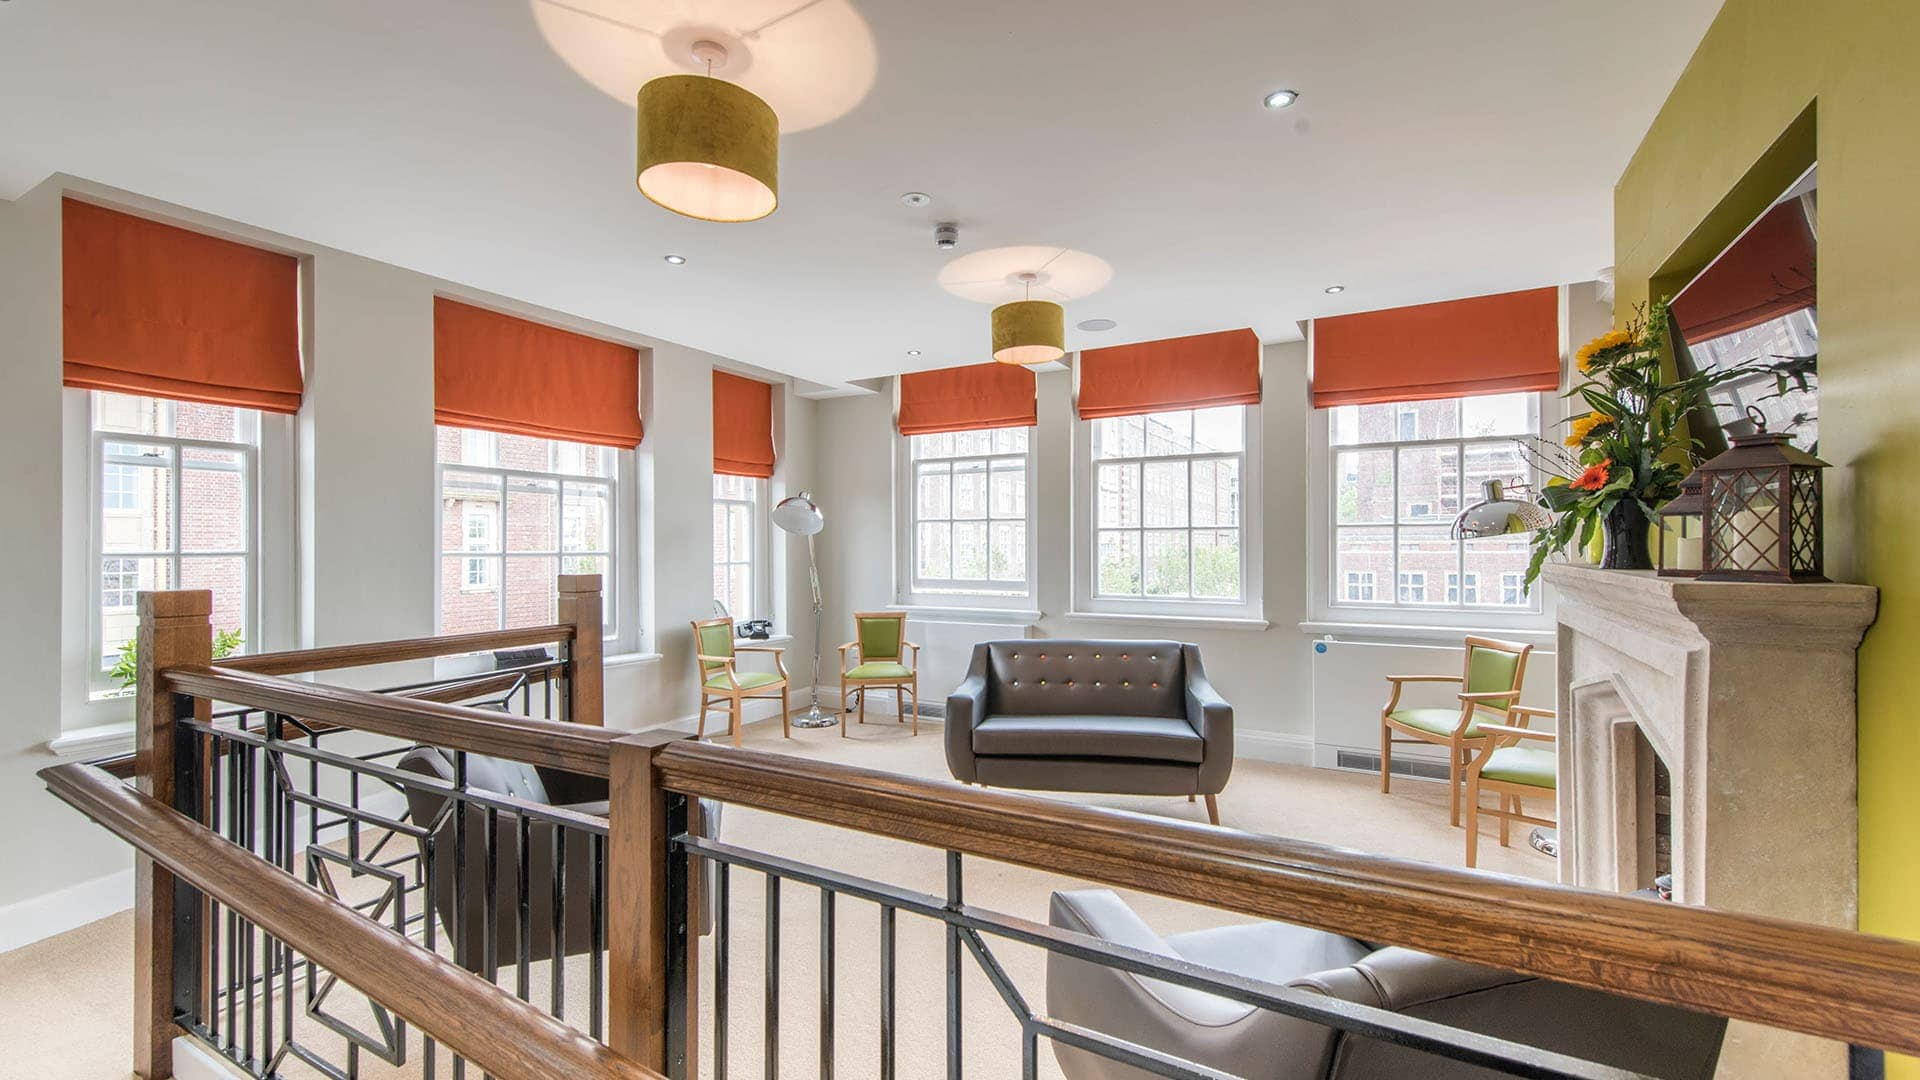 chocolate works care home contract blinds in common room